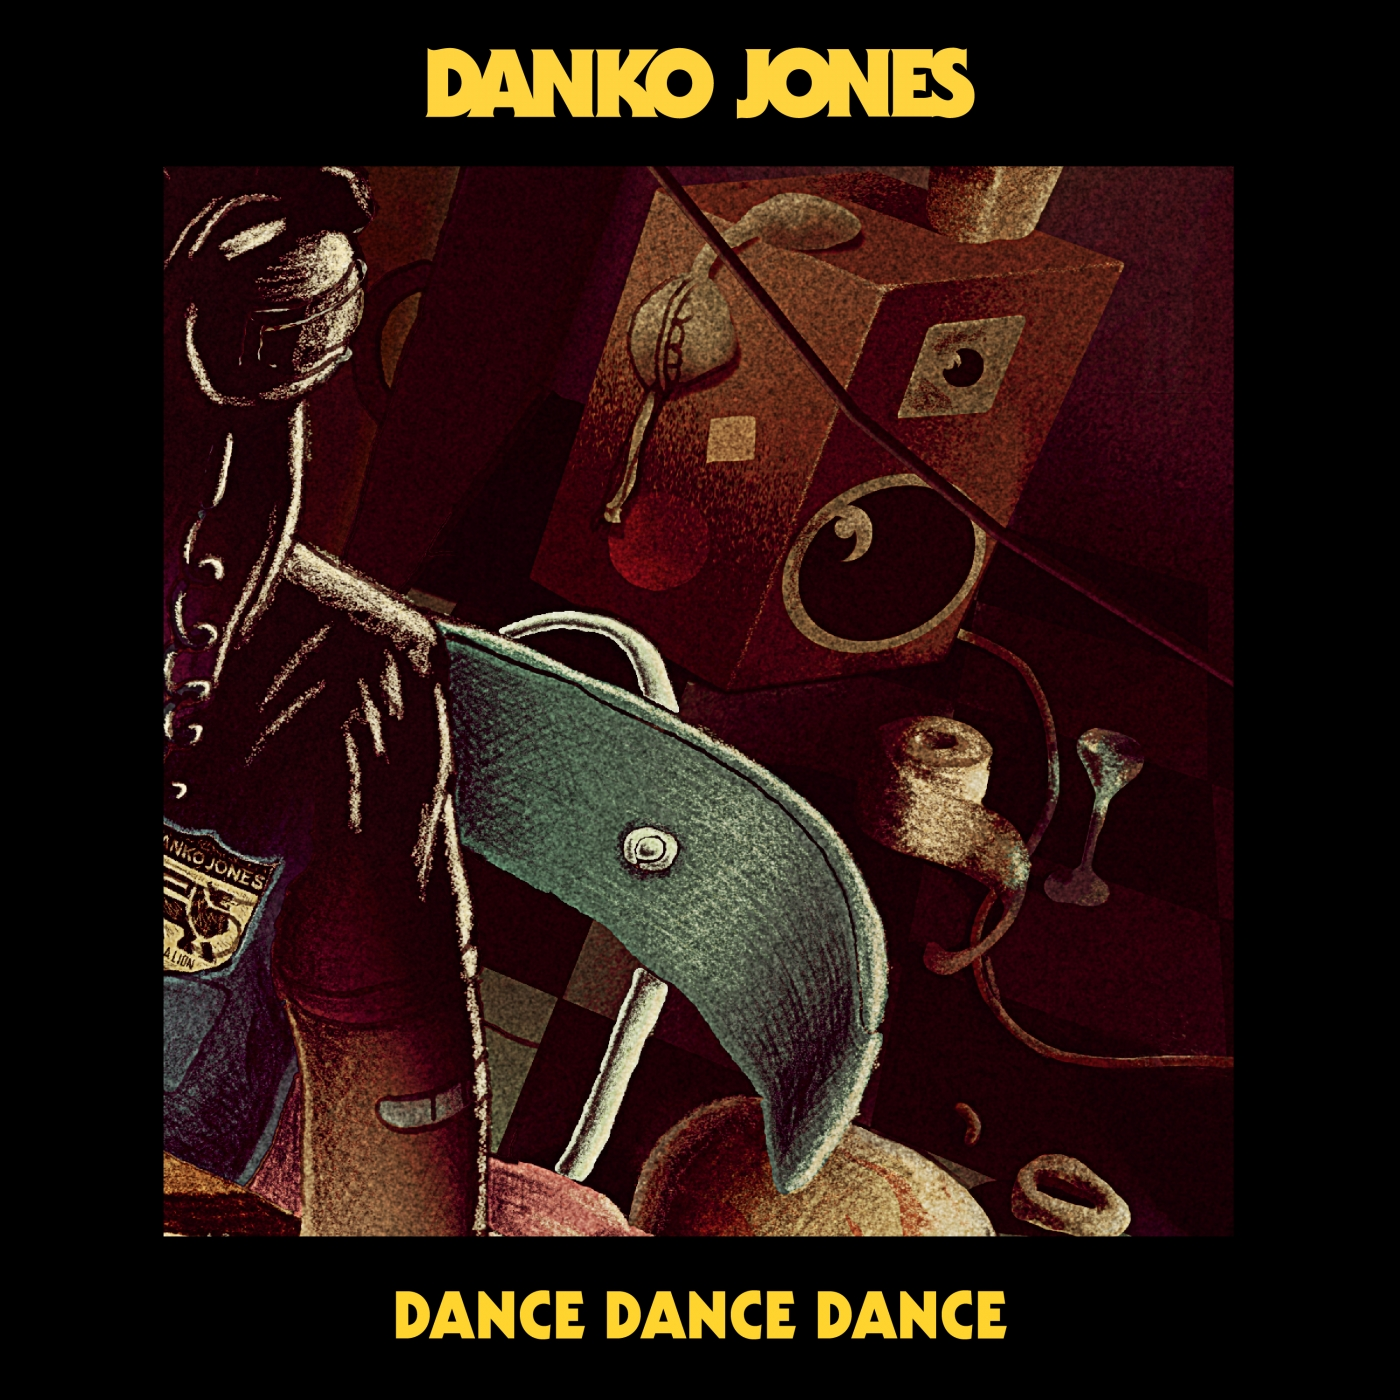 Danko Jones - Dance Dance Dance